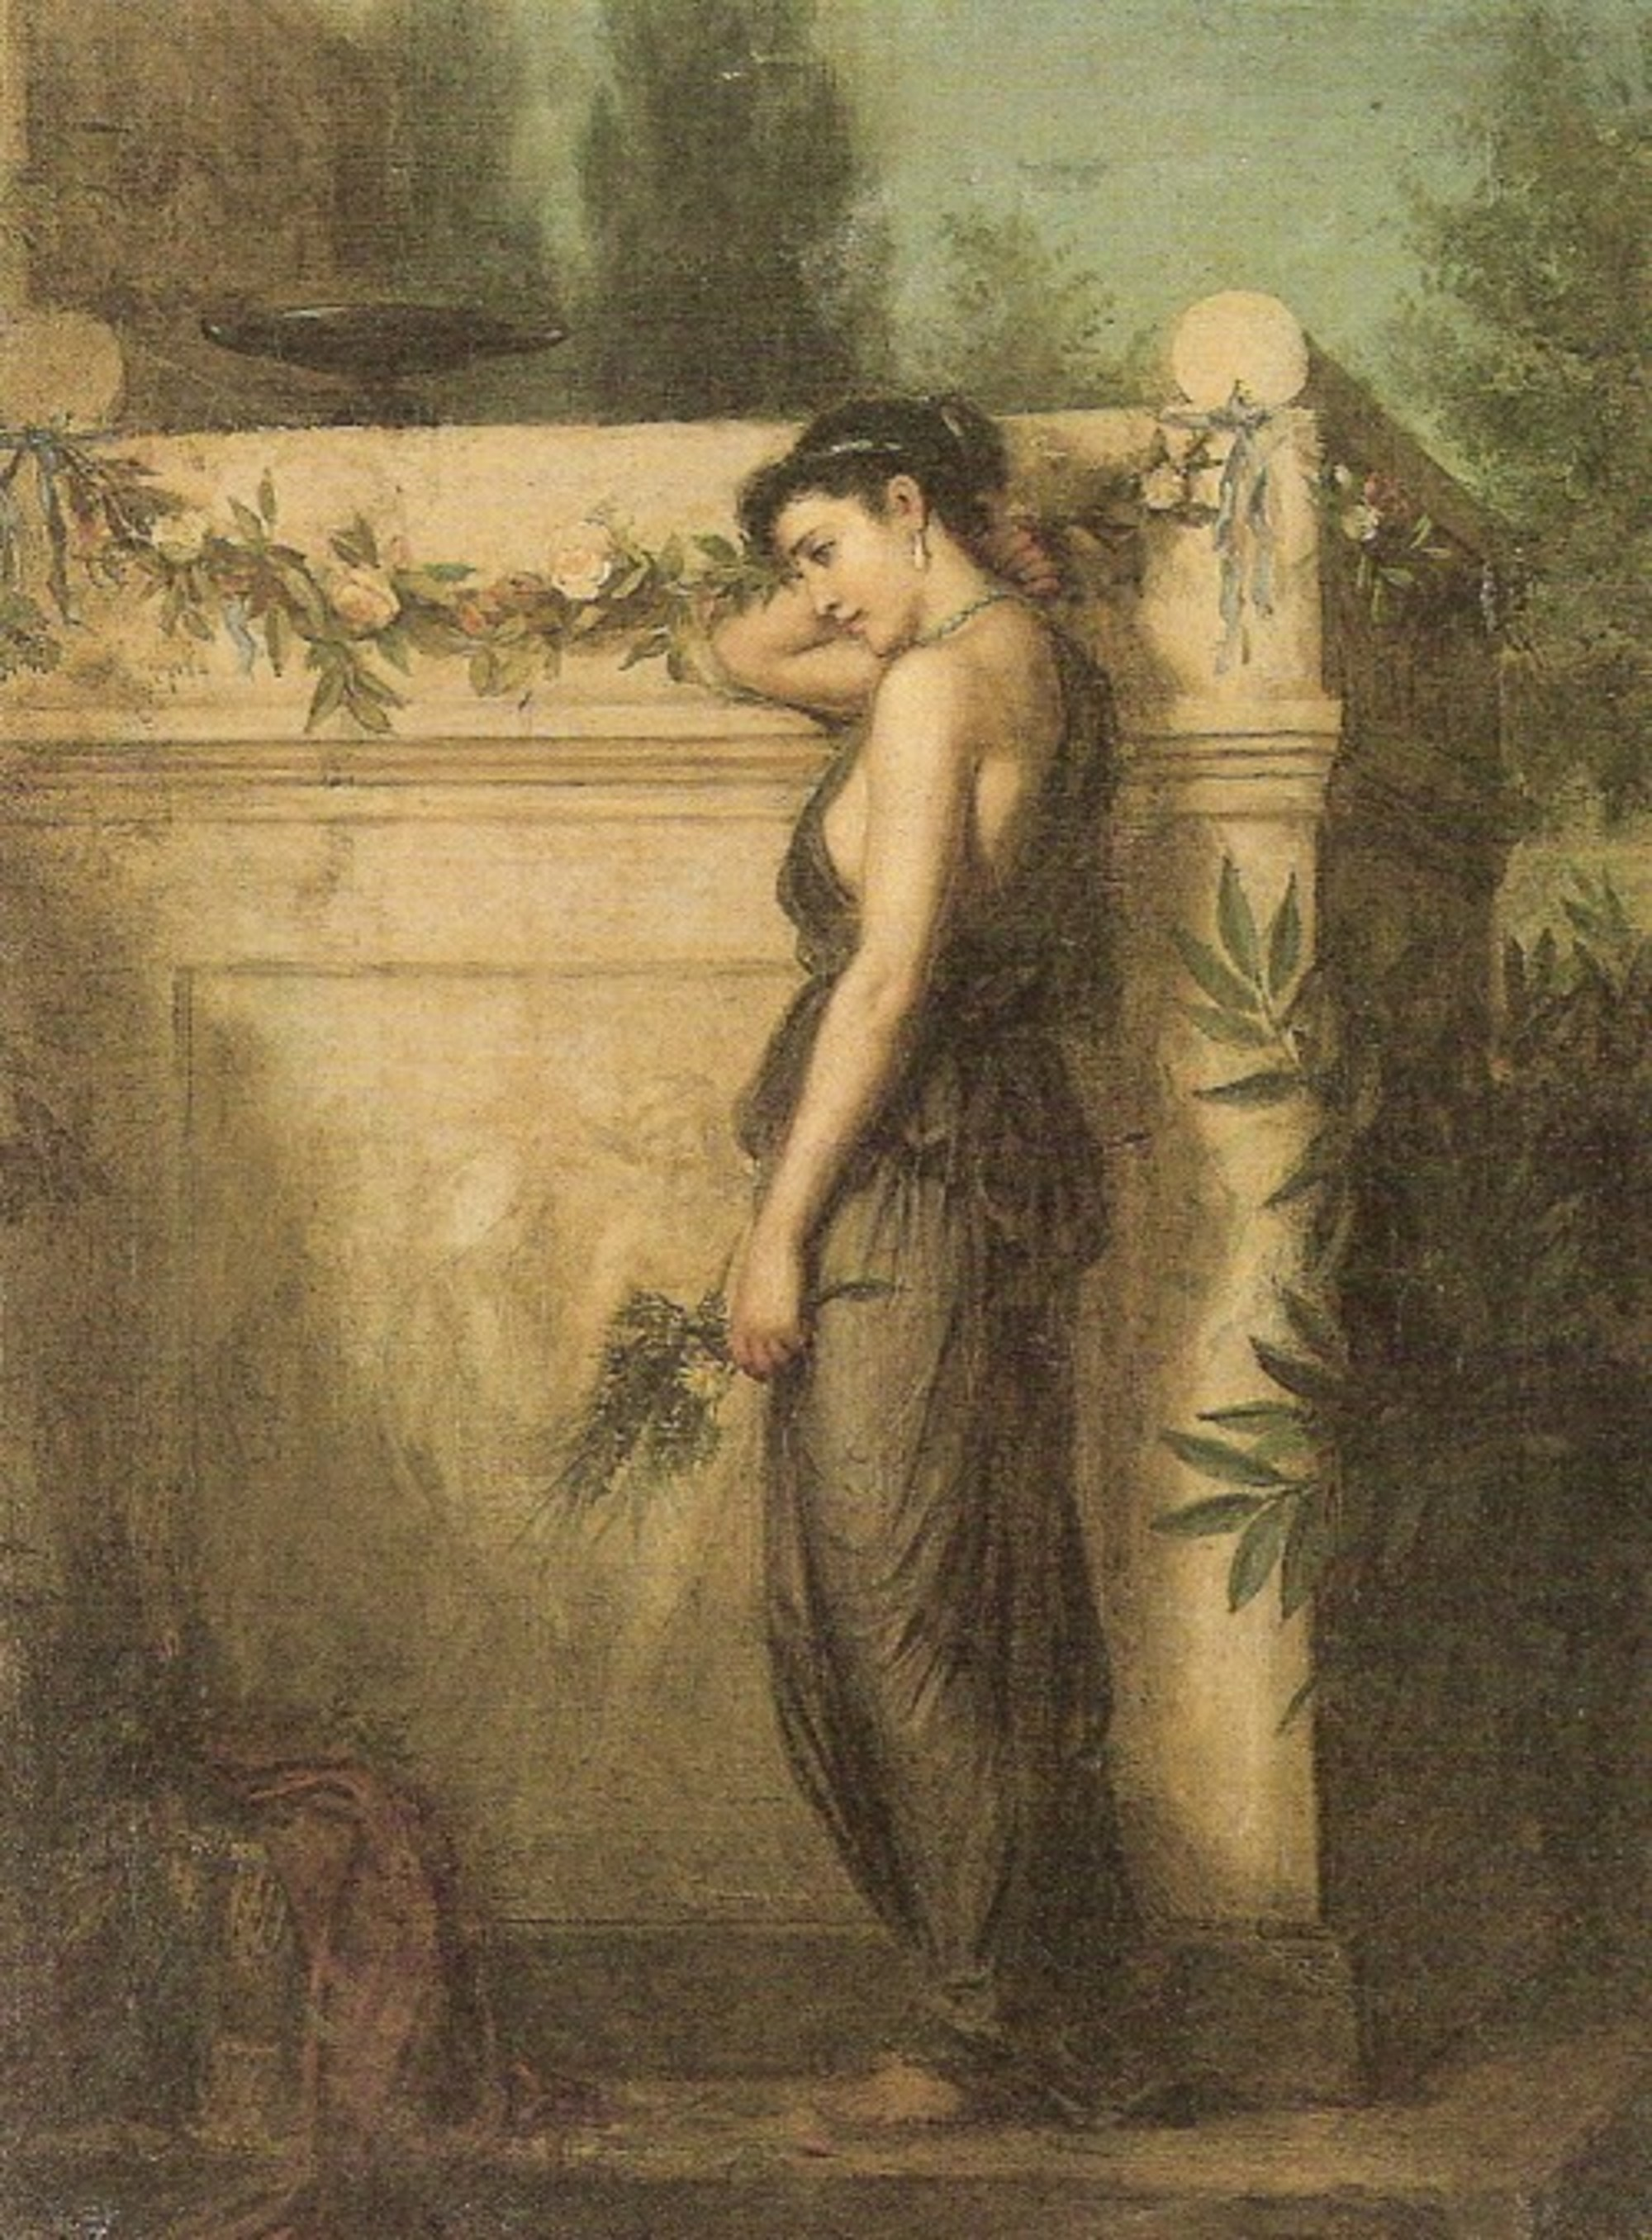 Gone_But_Not_Forgotten_-_John_William_Waterhouse.jpg